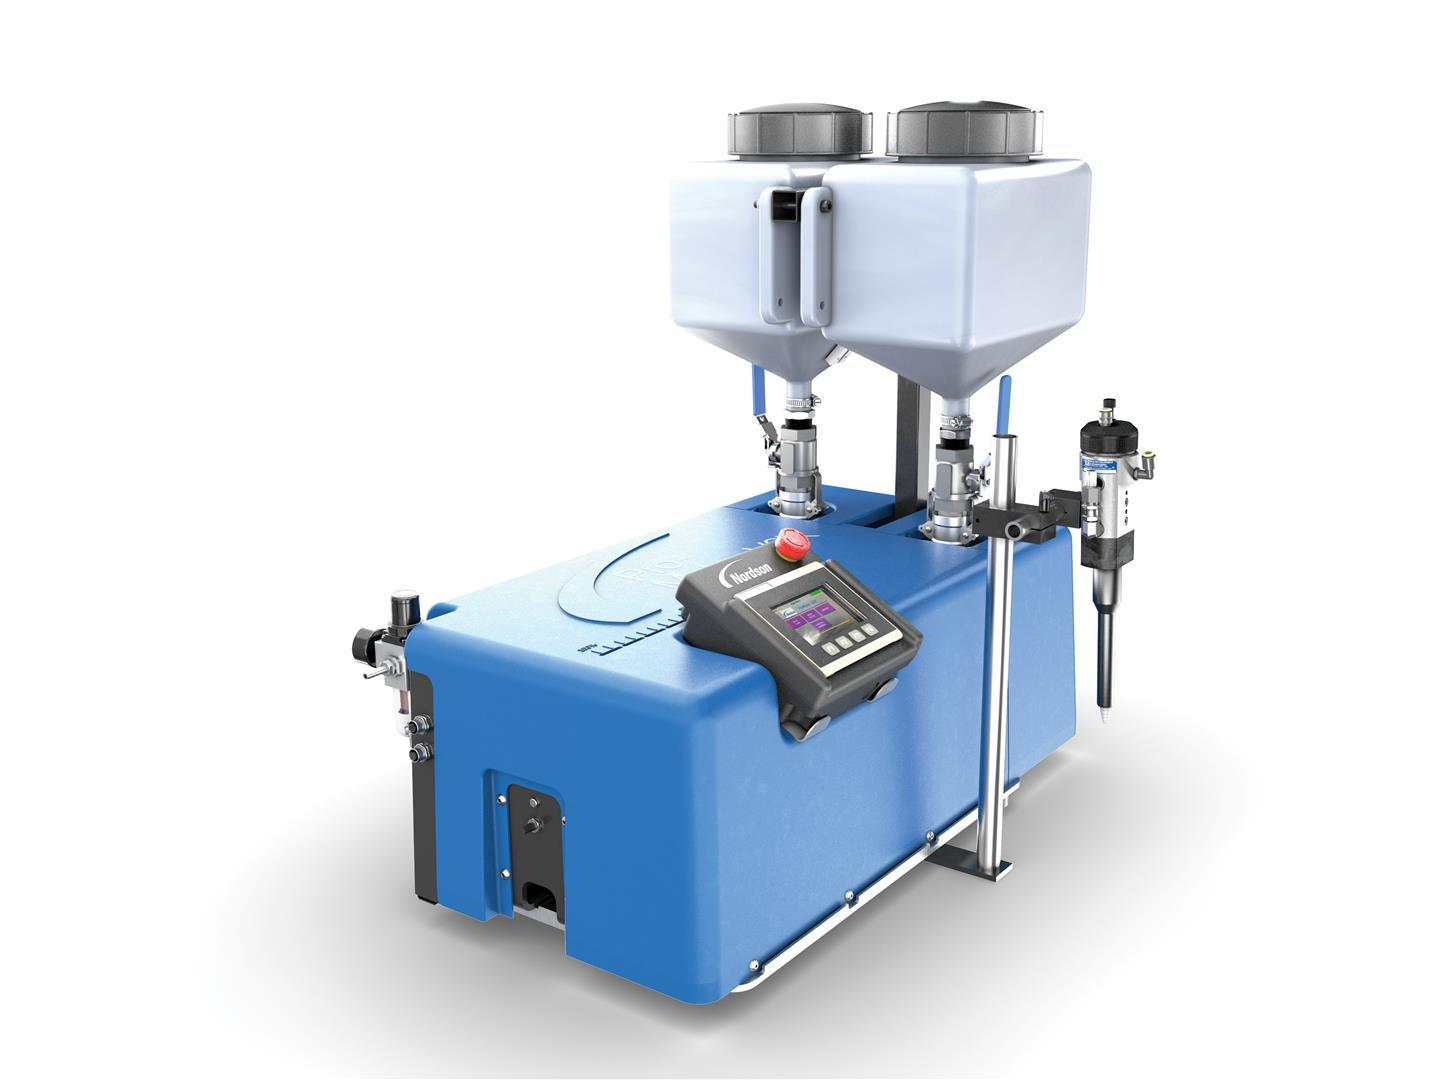 Nordson SEALANT EQUIPMENT Introduces a Comprehensive New Range of